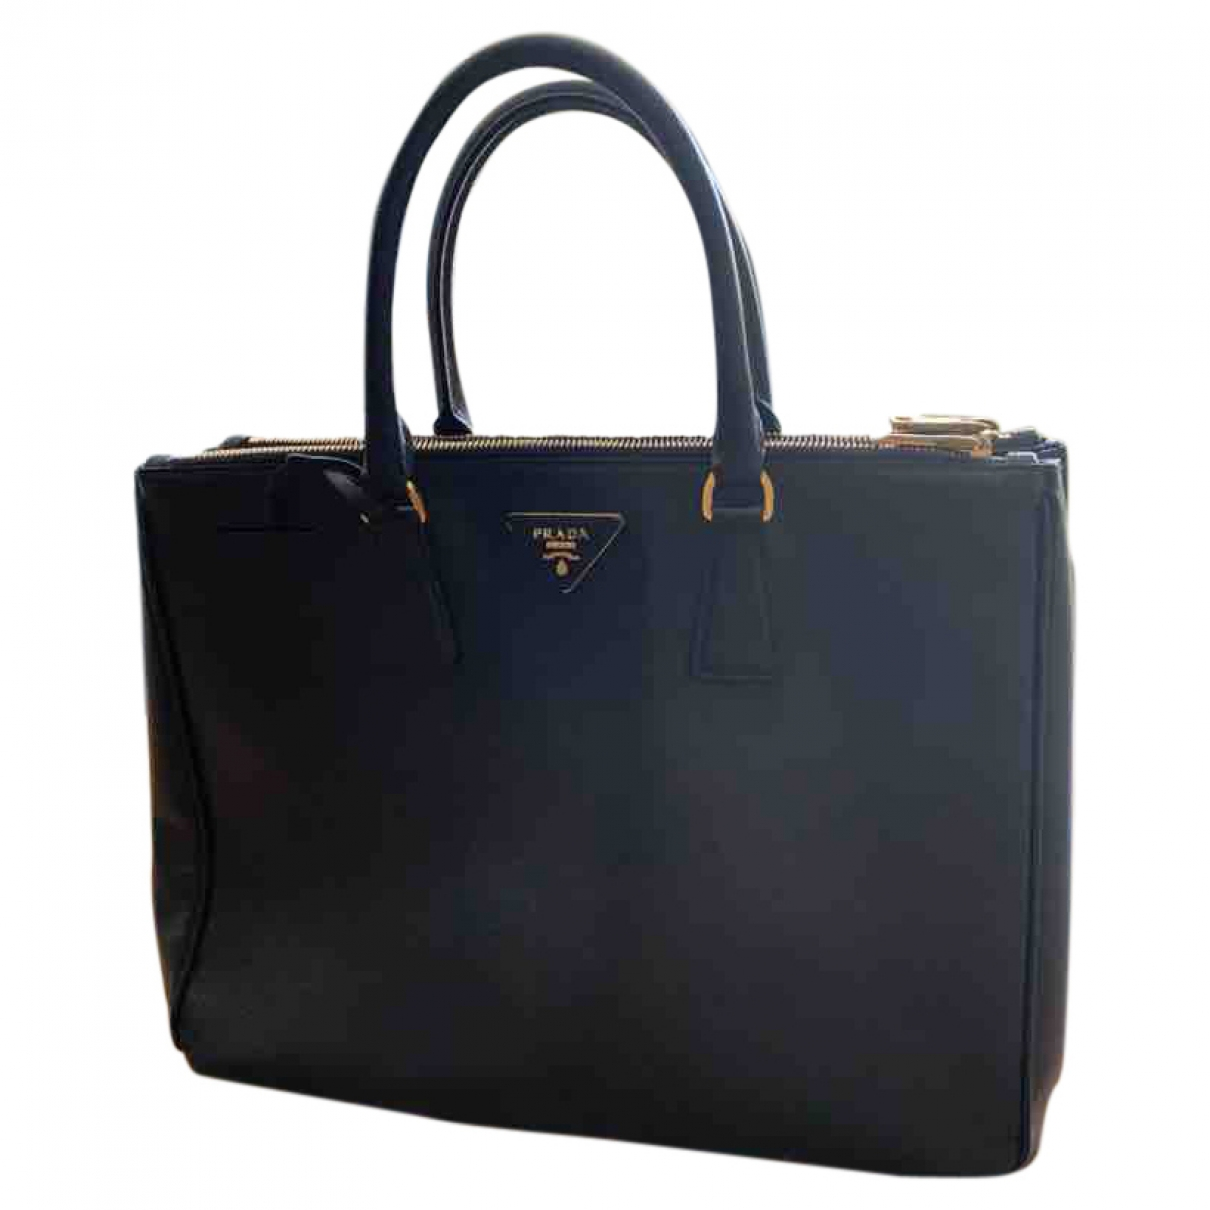 Prada Galleria Black Leather handbag for Women \N